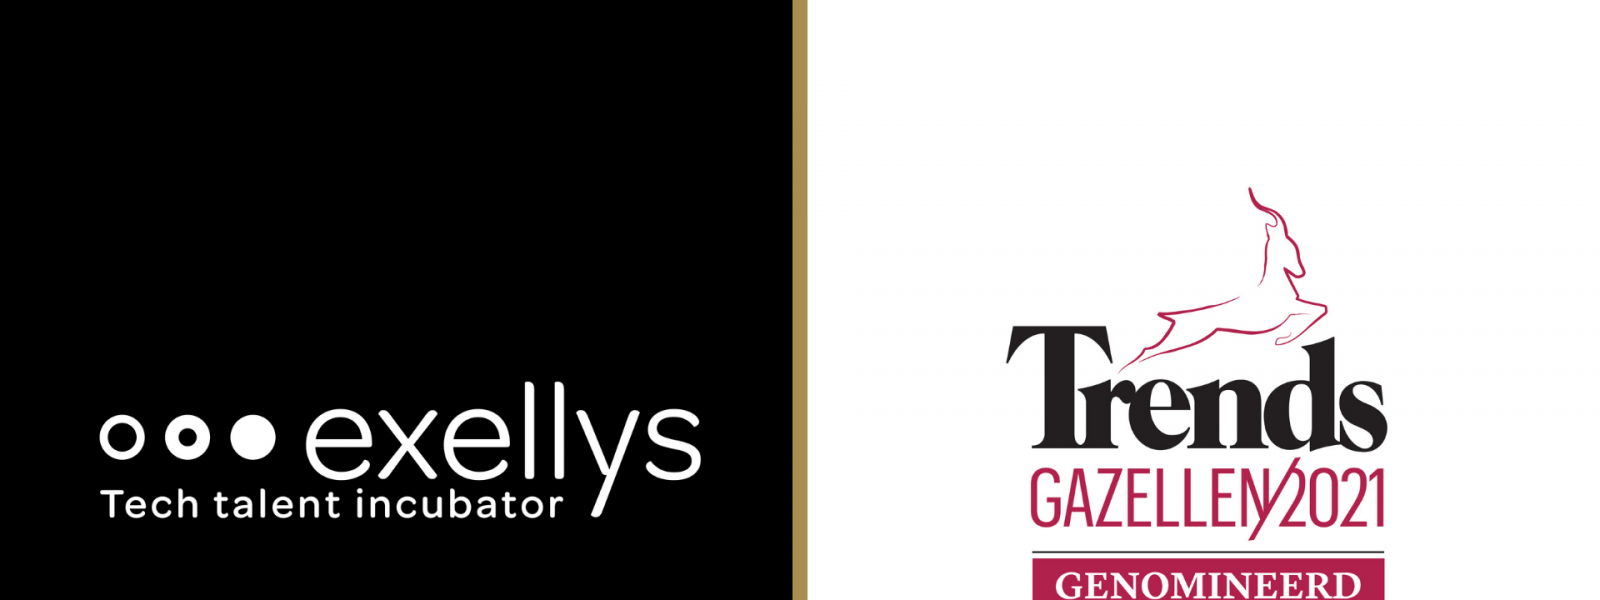 Exellys is nominated for Trends Gazellen 2021 - Blogpost cover